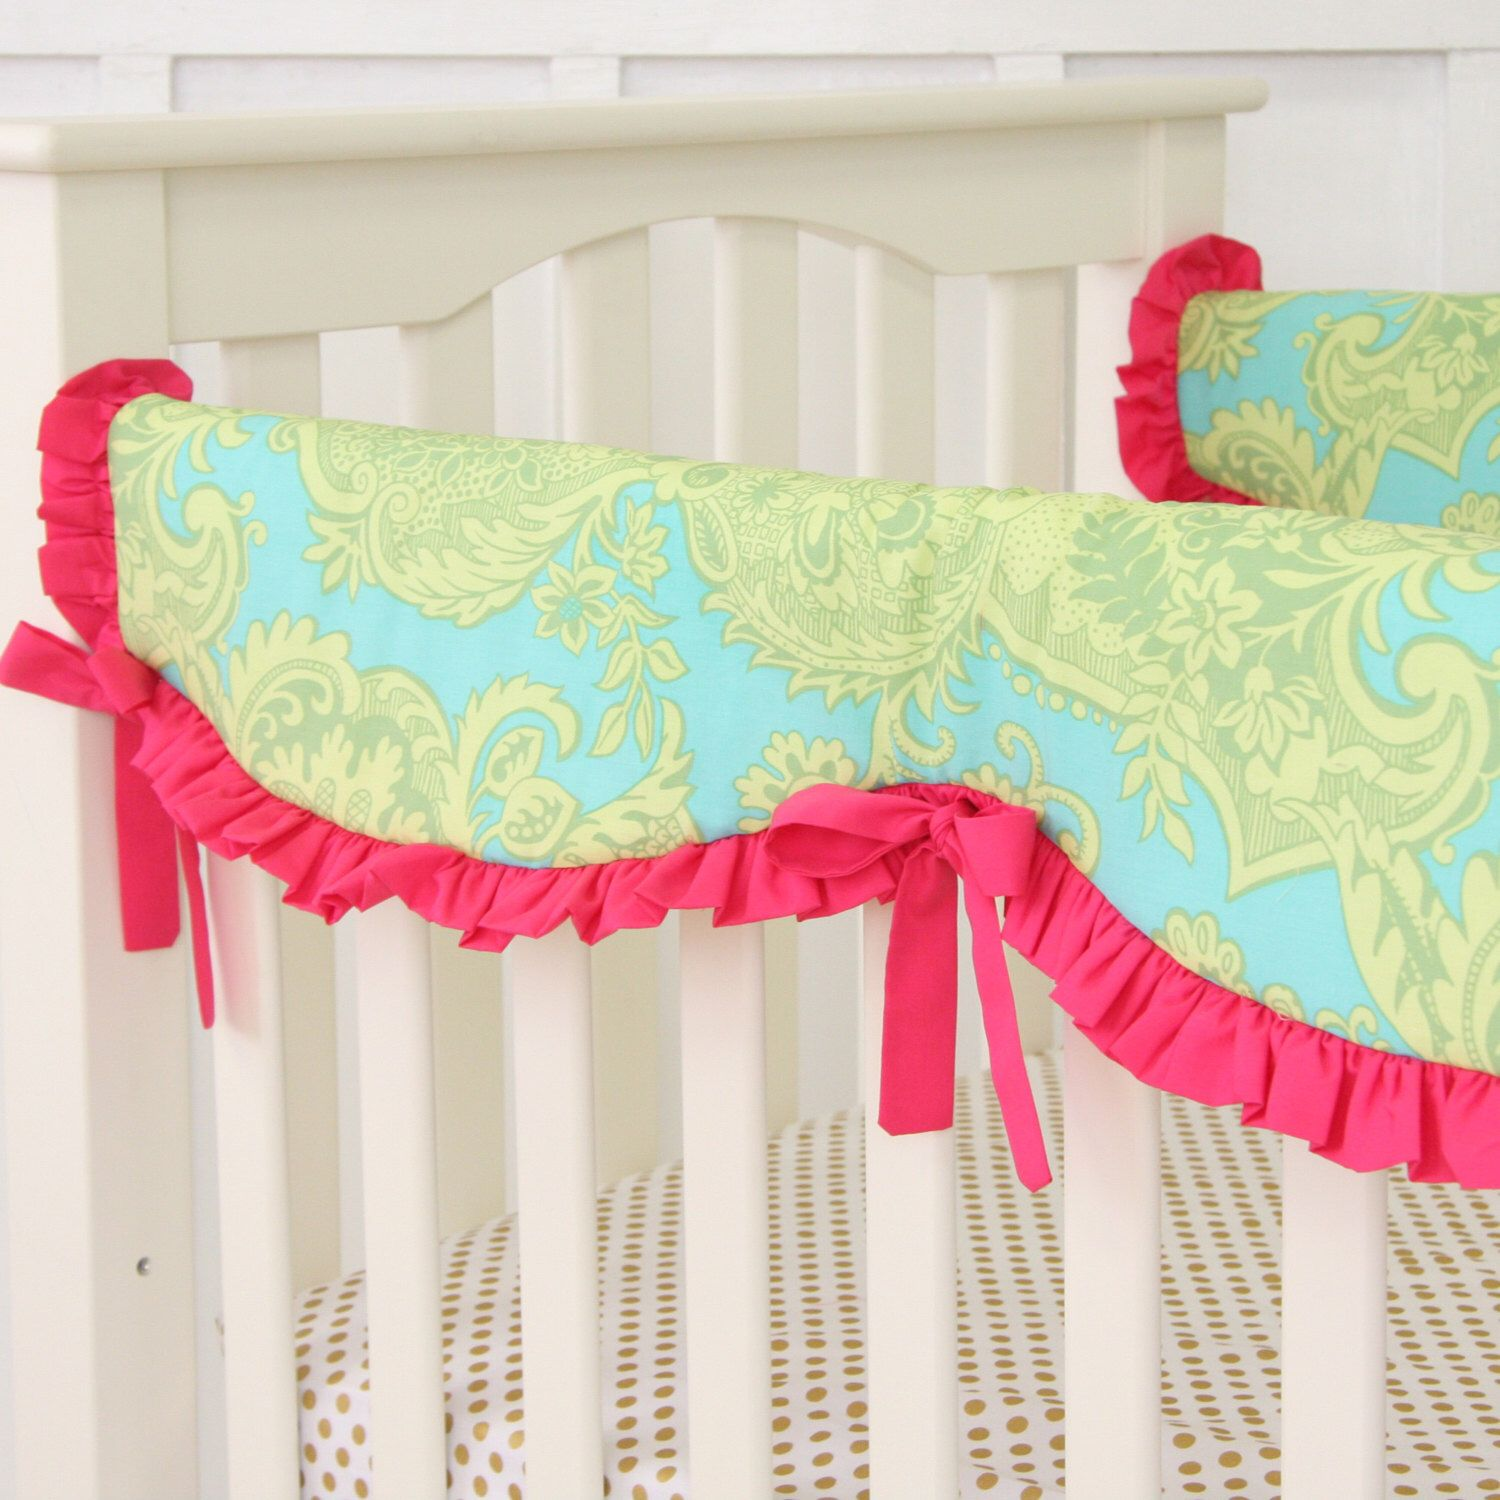 Piper's Paisley Crib Rail Cover for Bumperless Bedding